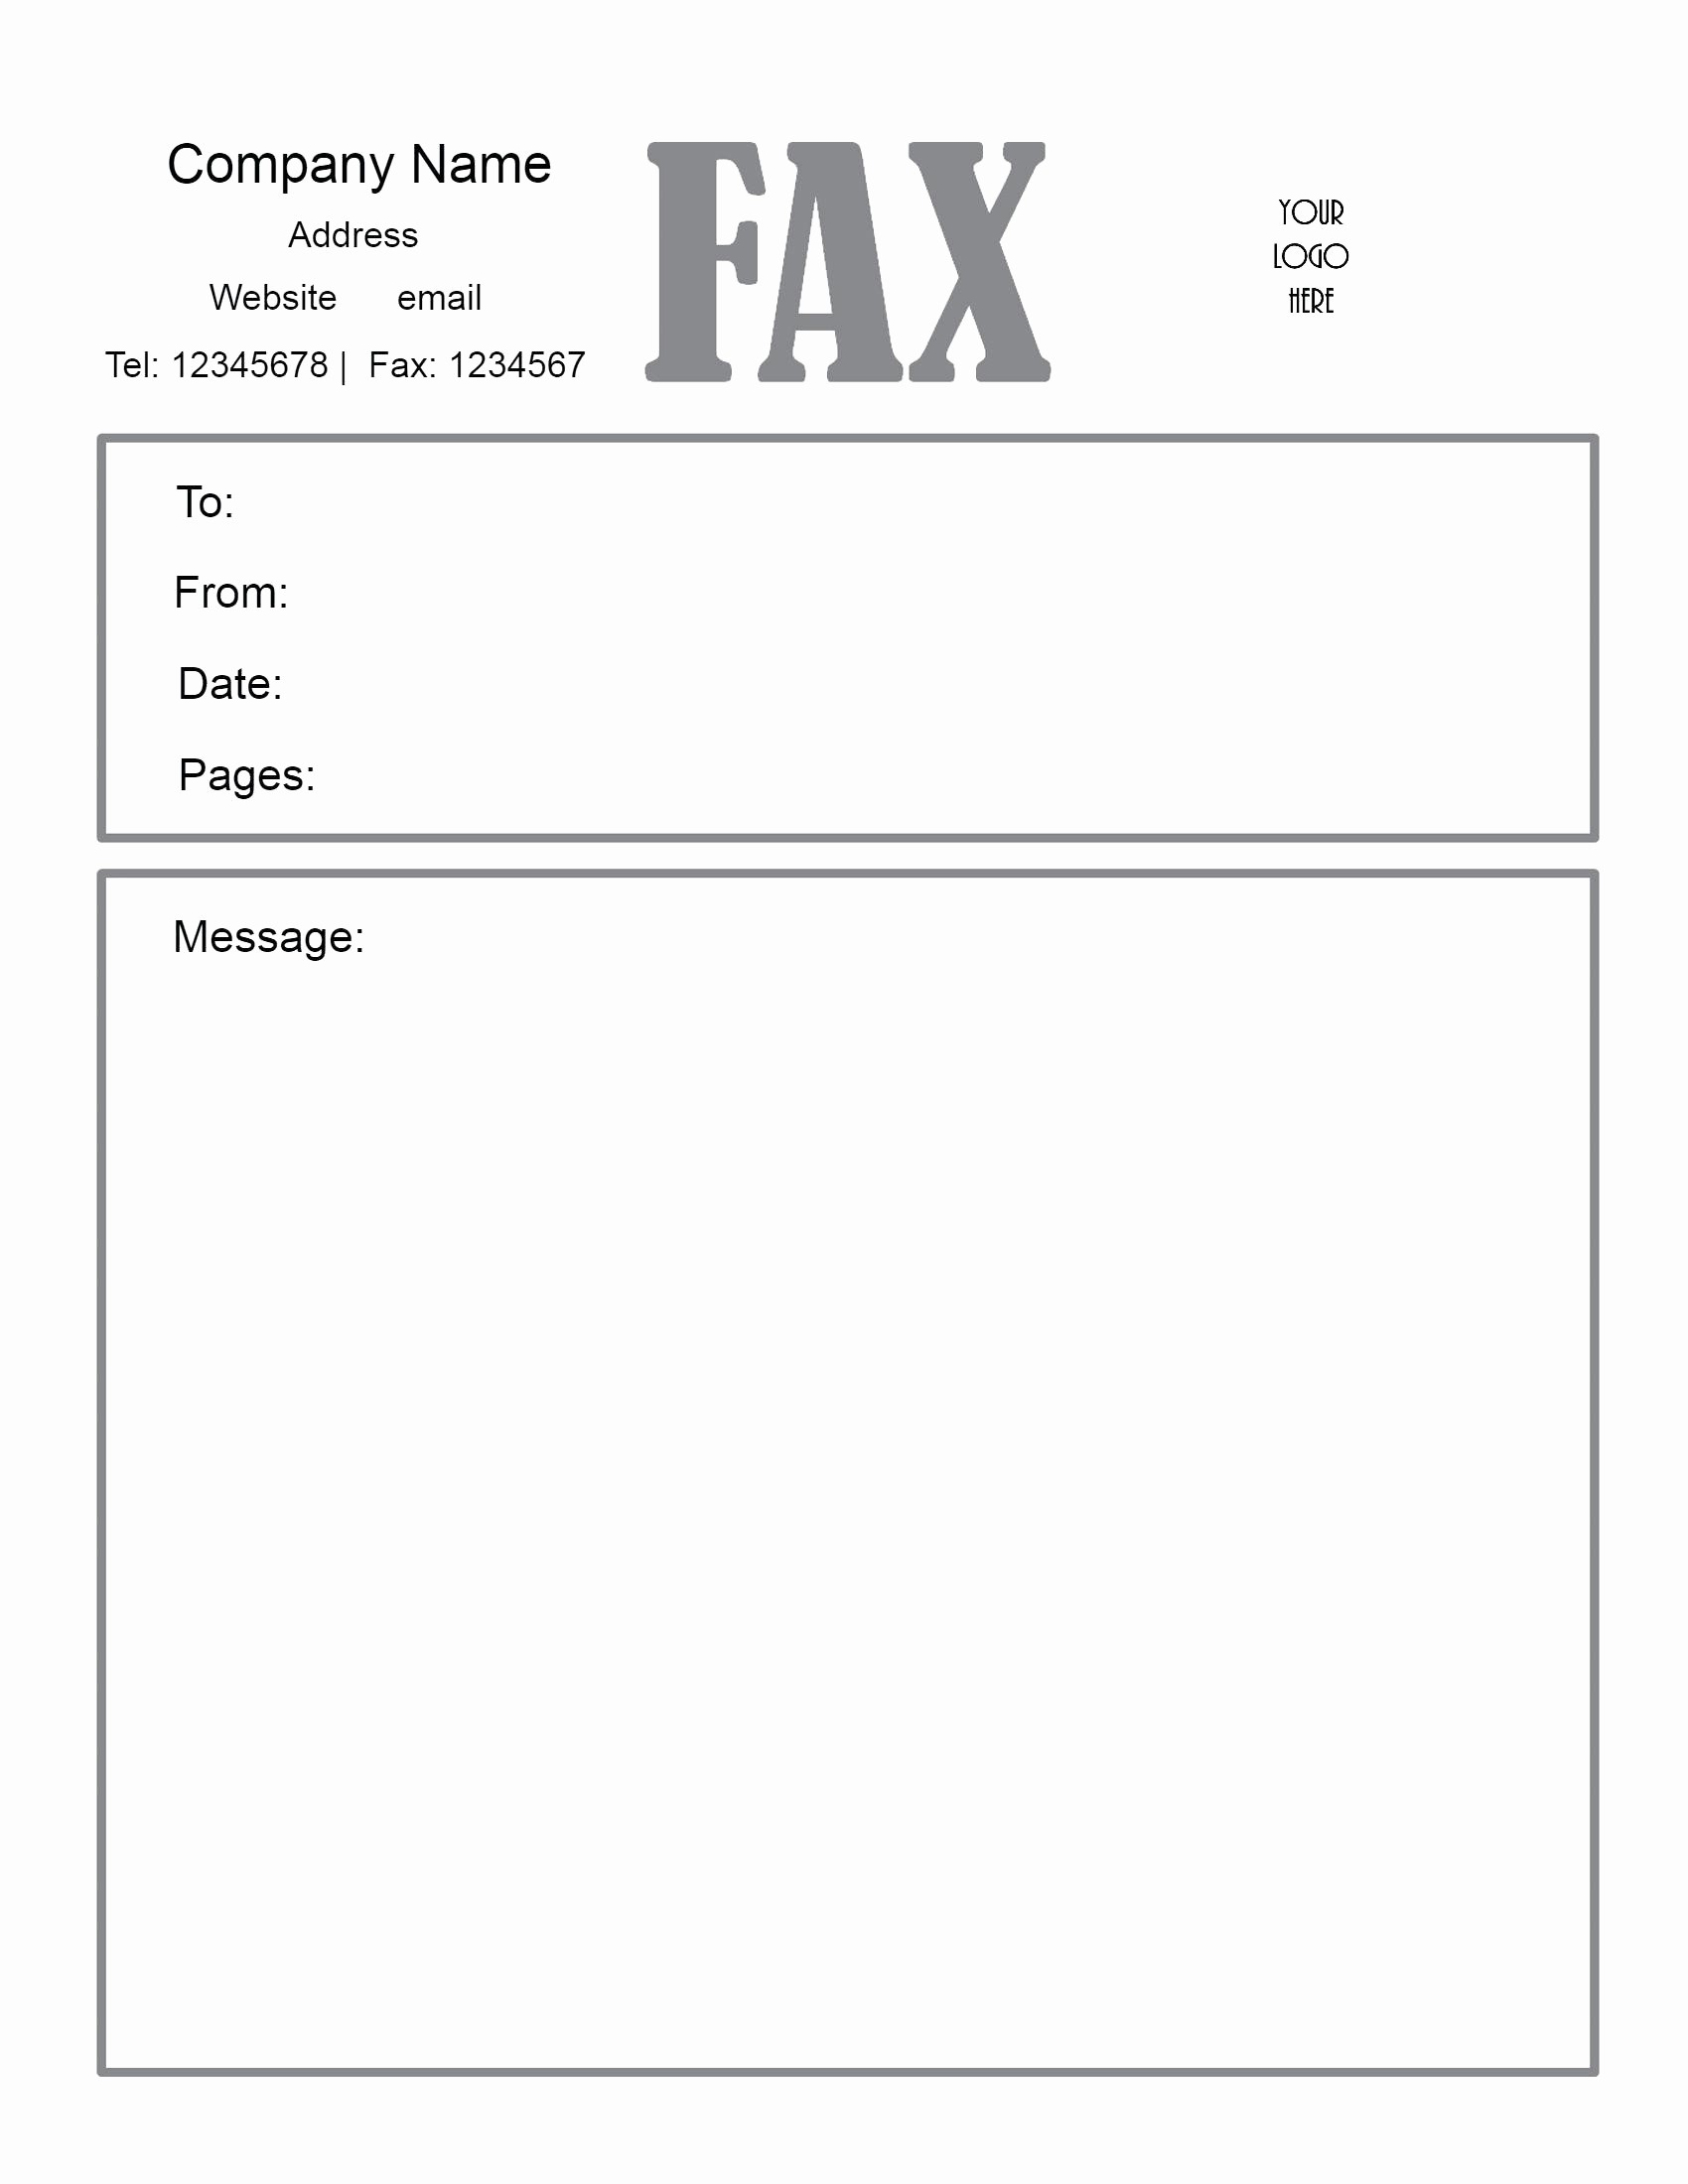 Fax Cover Sheet Pdf format Fresh Fax Cover Sheet Pdf Free Download